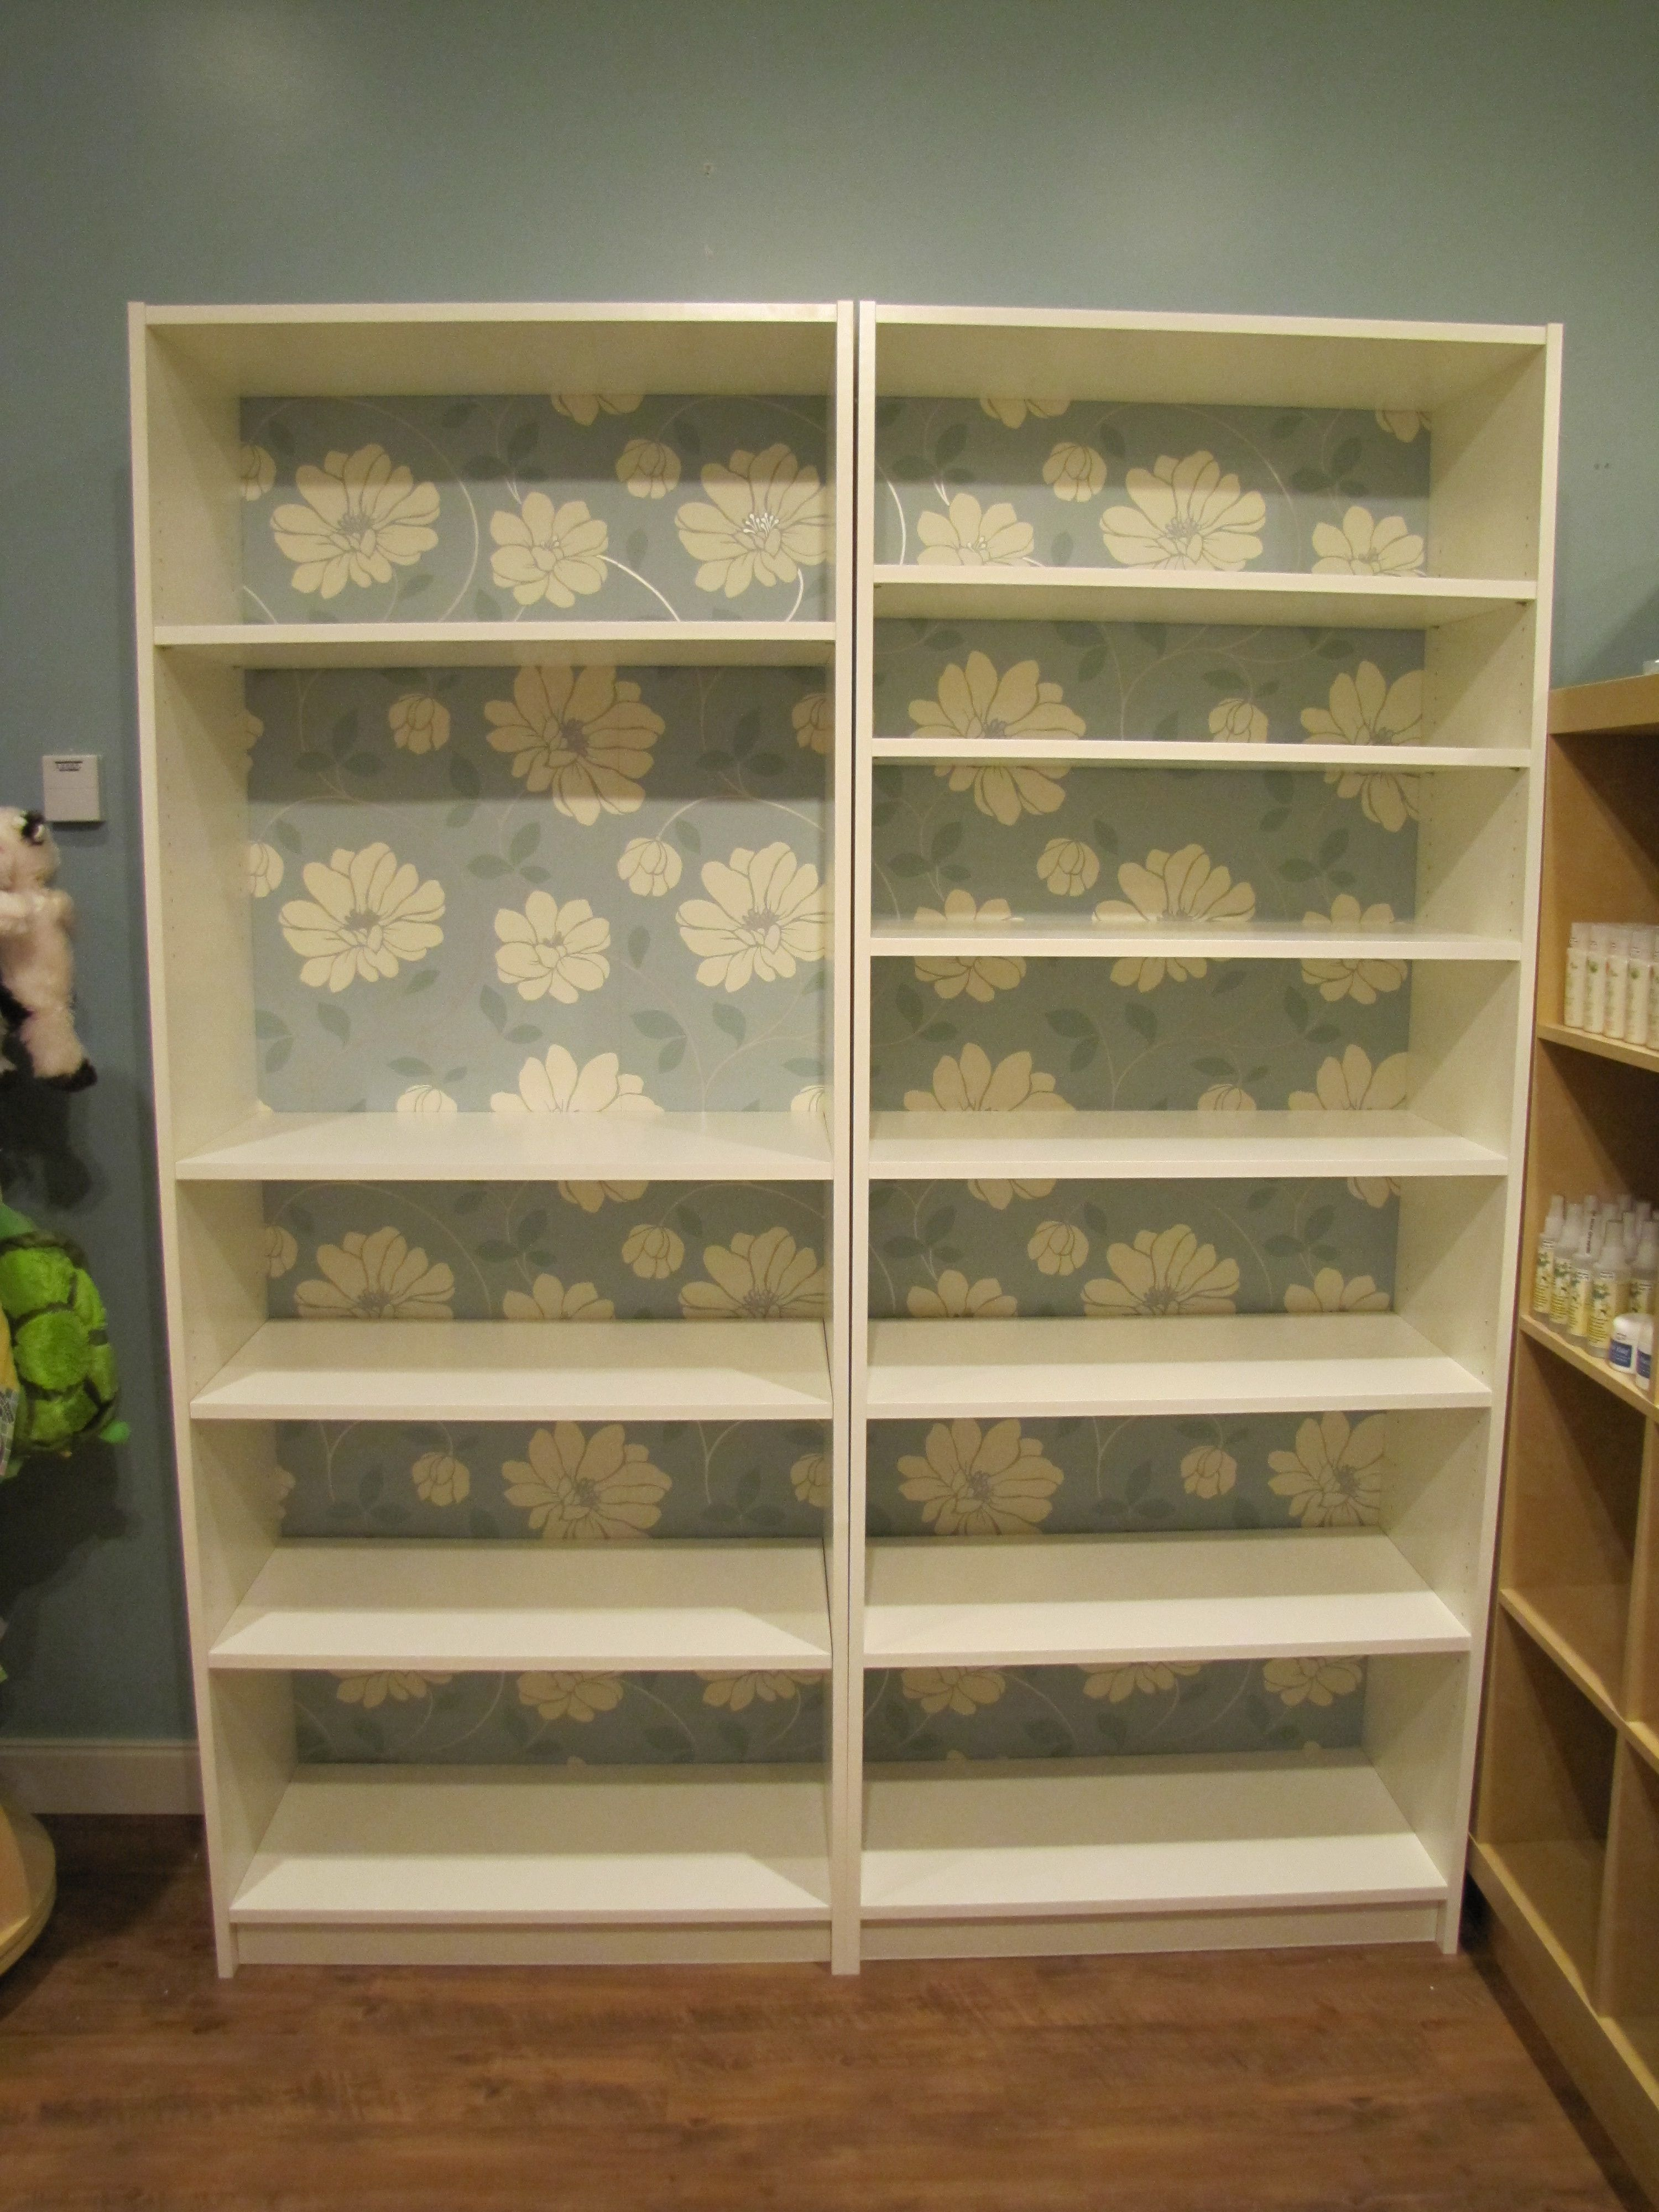 Ikea Hack... I added wallpaper to the back of 2 Billy Bookshelves.  Love it!  Gives it character & personality!